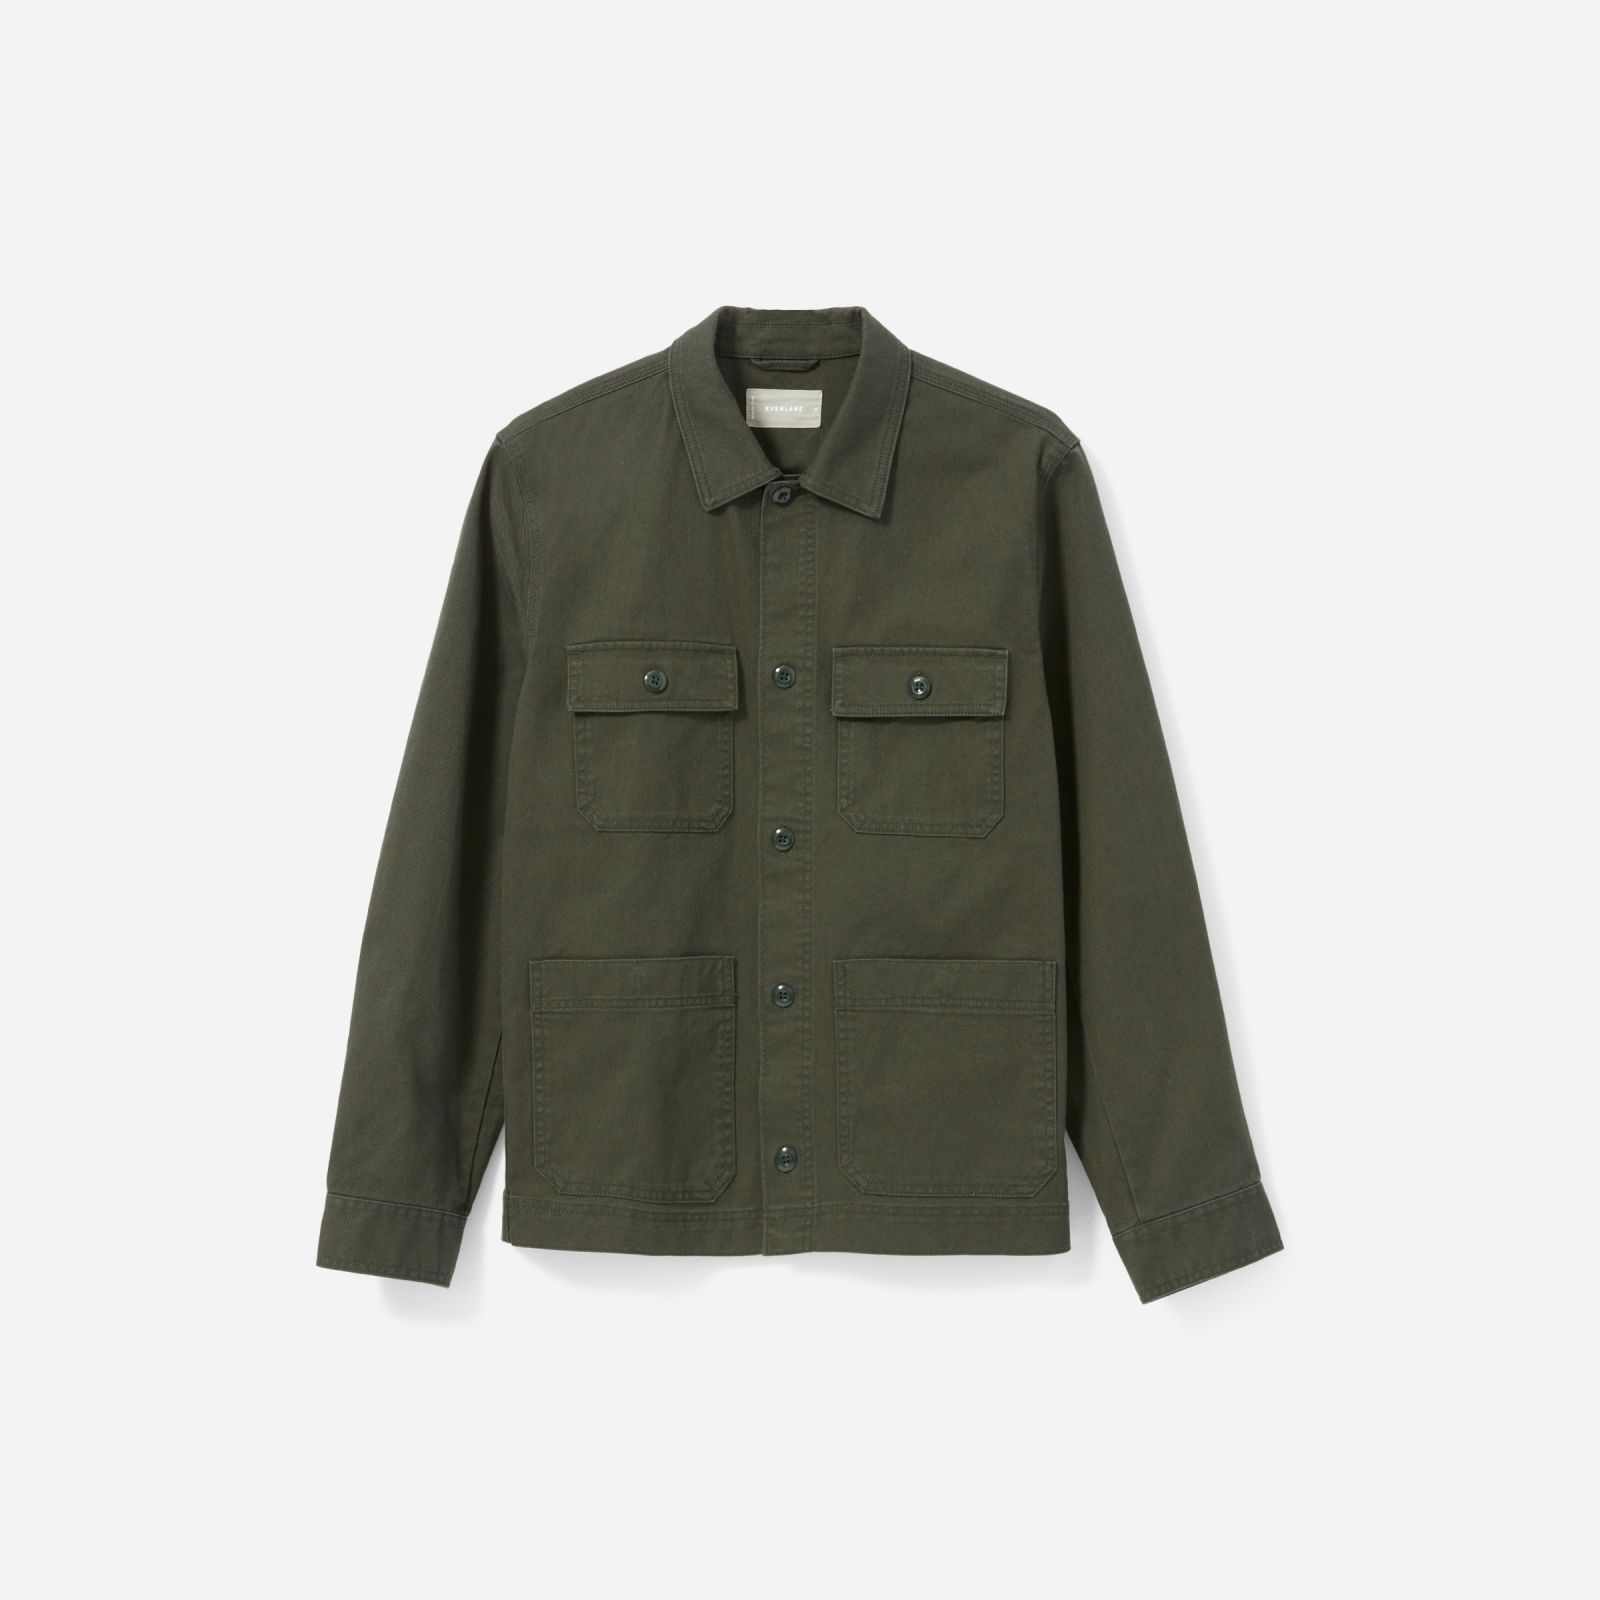 men's chore jacket by everlane in pine, size m